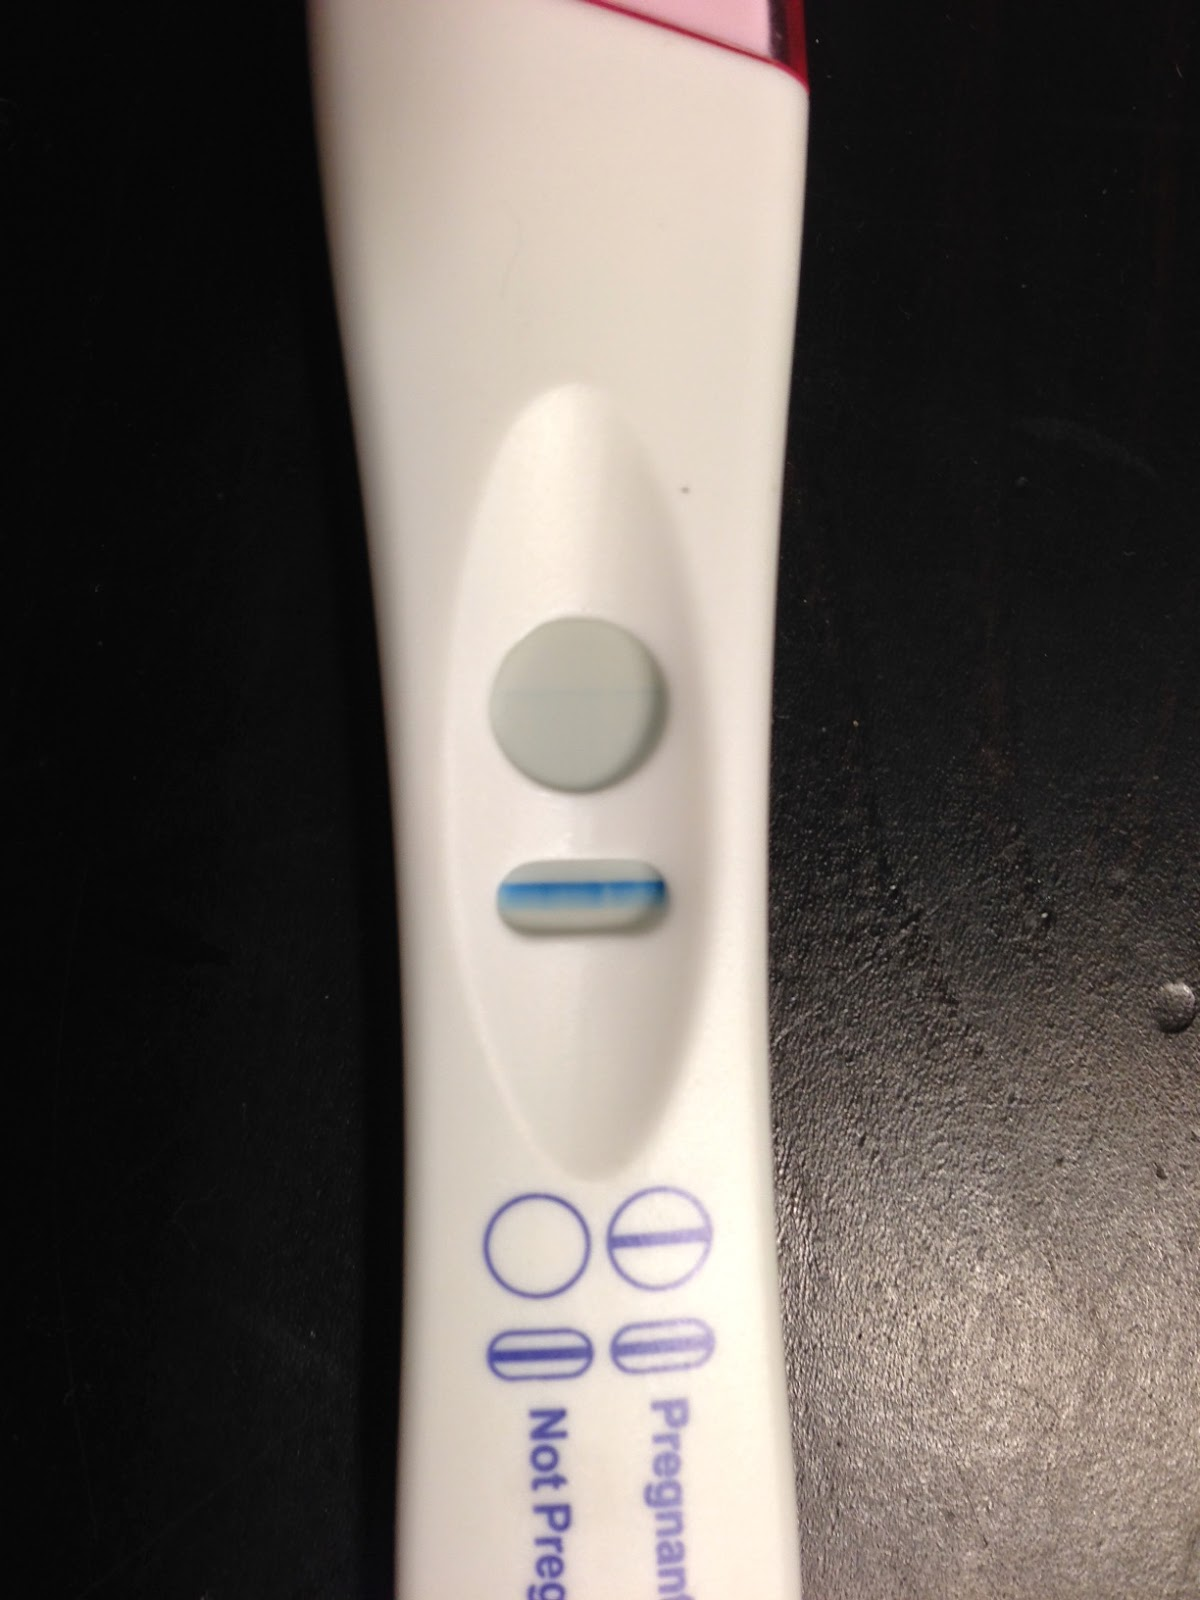 Blue dye pregnancy tests (are evil) | My Life is About the